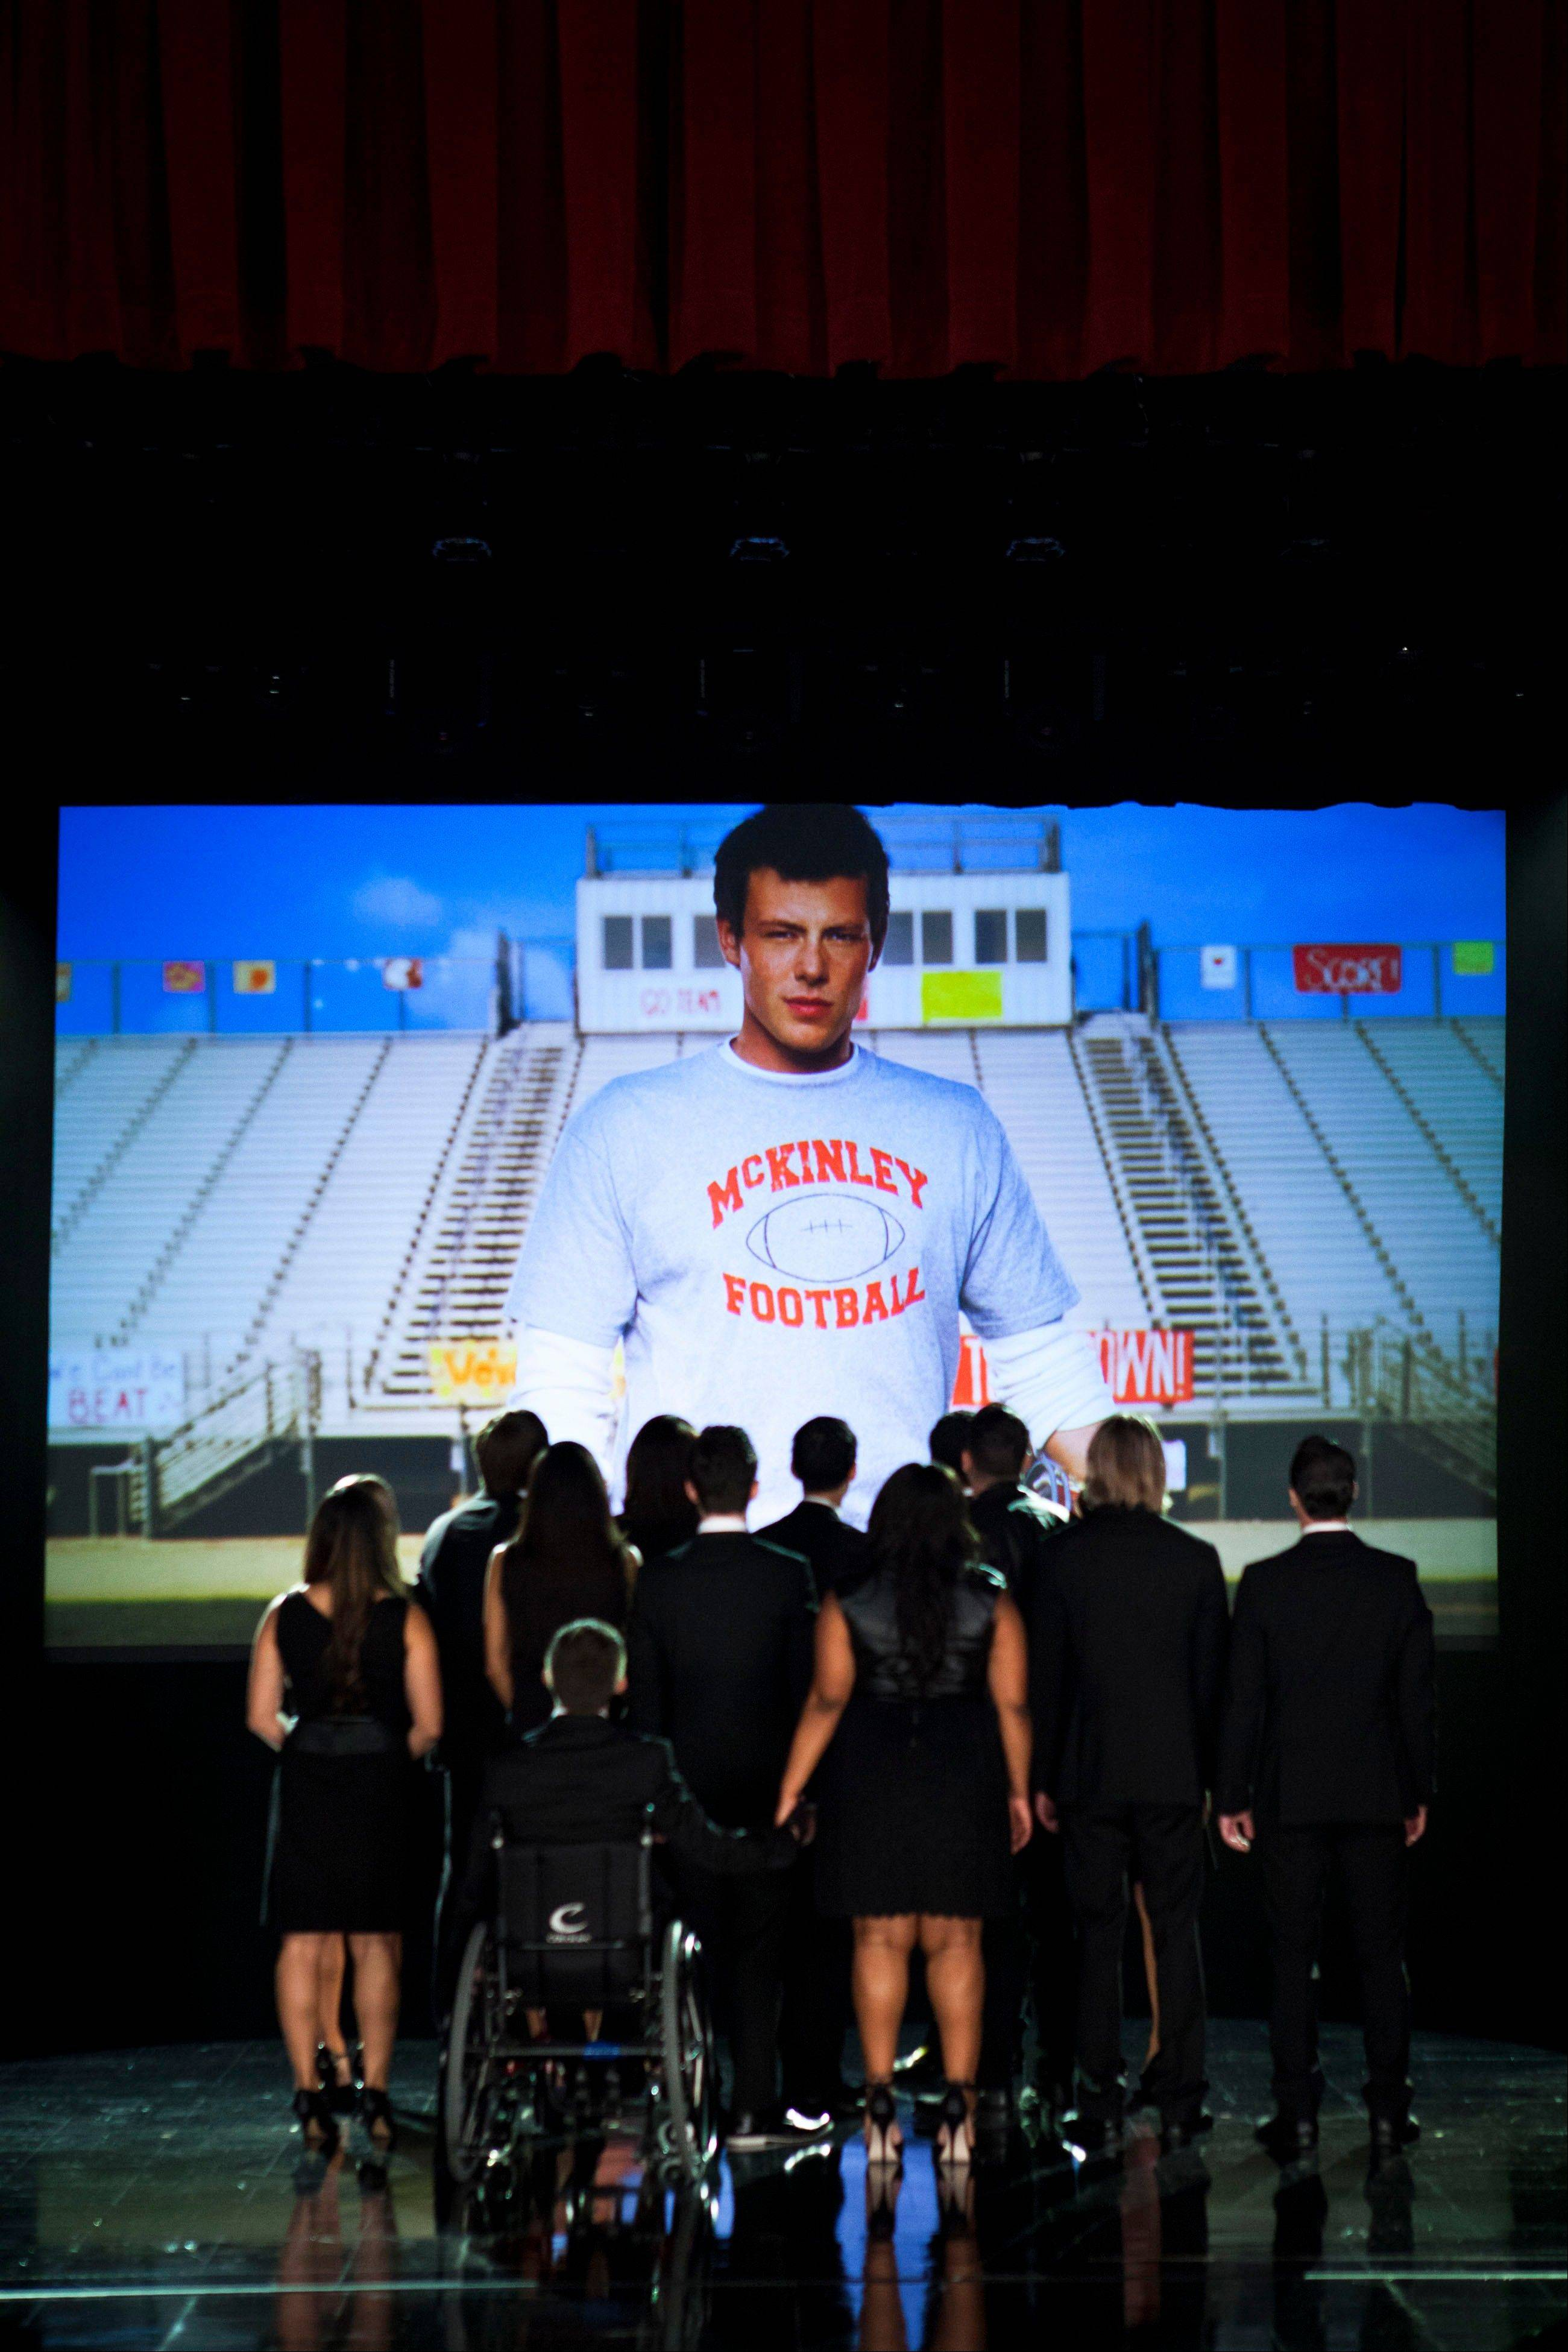 The McKinley family of the past and present joined together to remember and celebrate the life of Finn Hudson in �The Quarterback� episode of �Glee.� The high school musical drama said goodbye to Finn, its beloved singer-quarterback, while paying tribute to Cory Monteith, the late actor who had portrayed him, in a much-anticipated episode that aired Thursday.